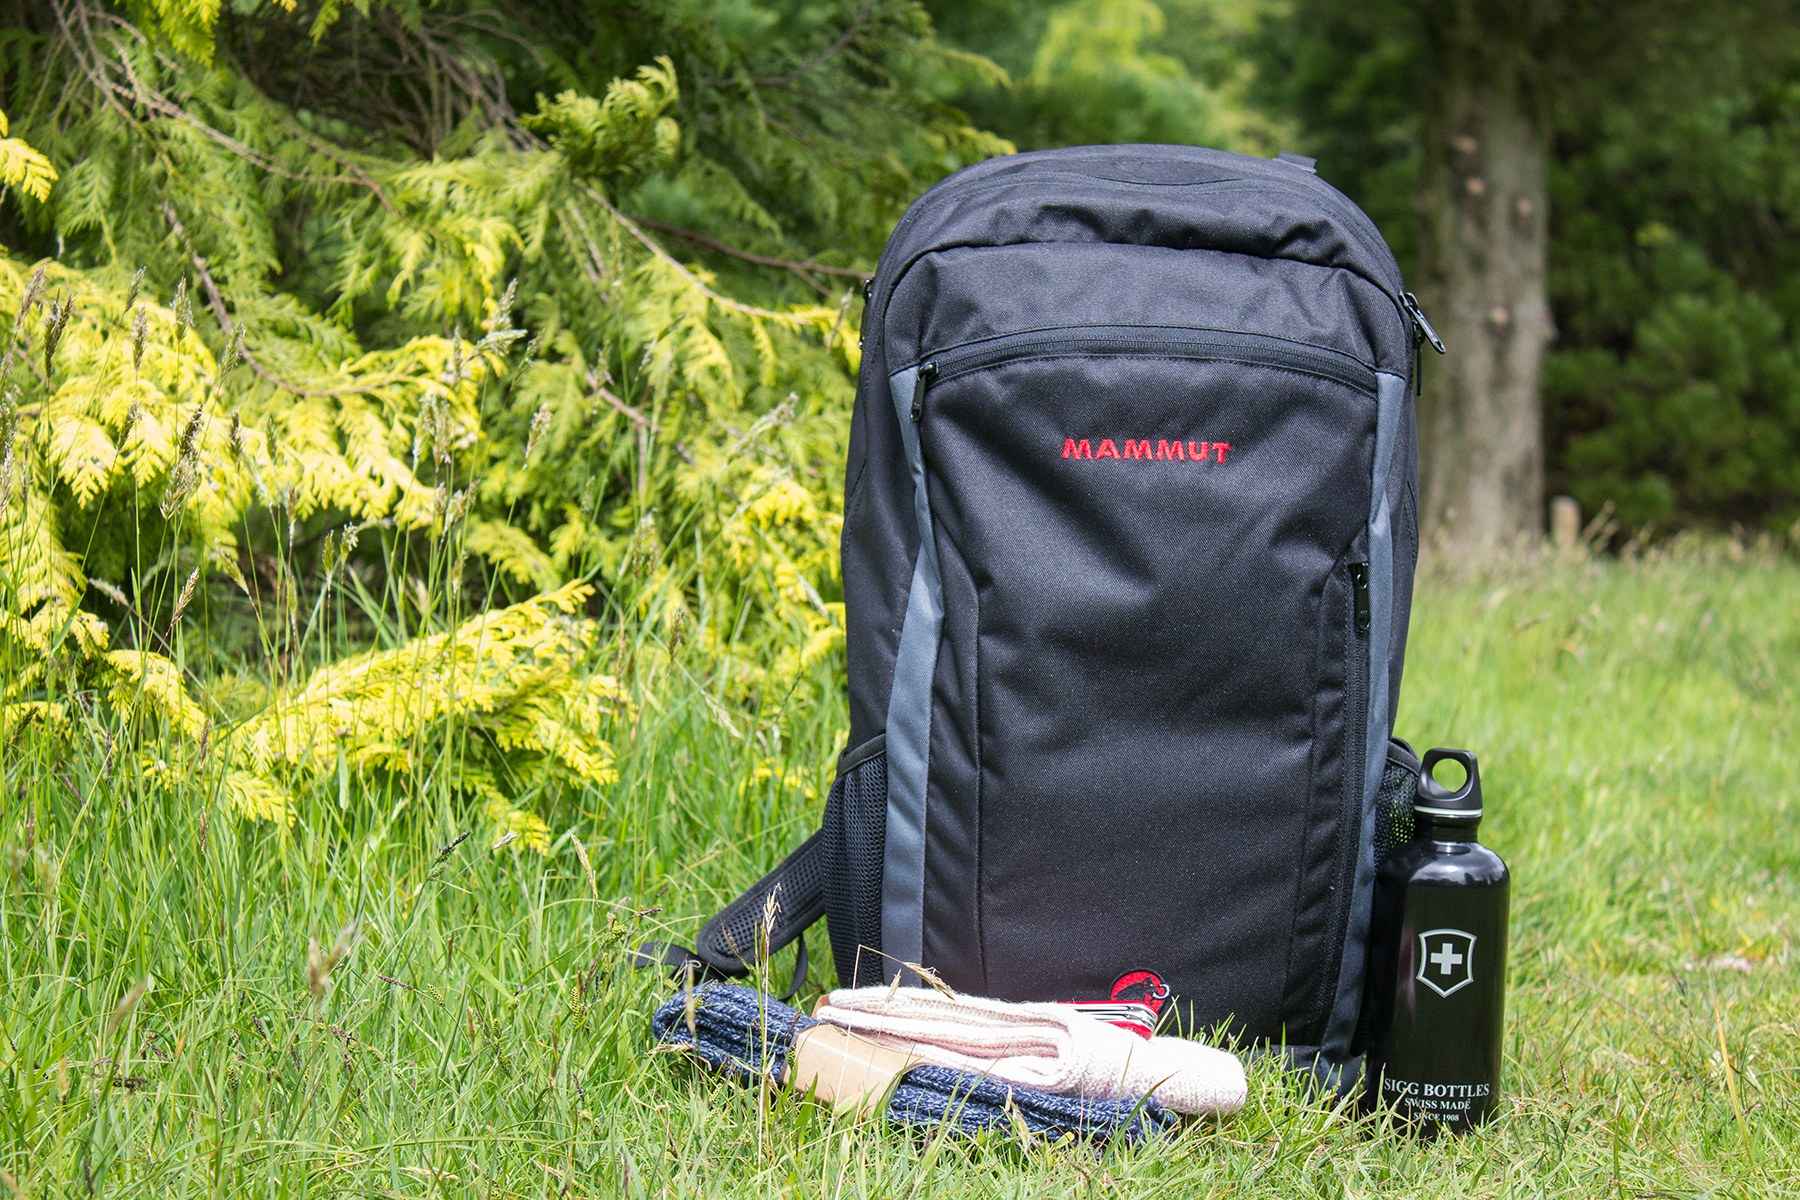 Mammut Xeron Element Bag Giveaway | lifeofkitty.co.uk